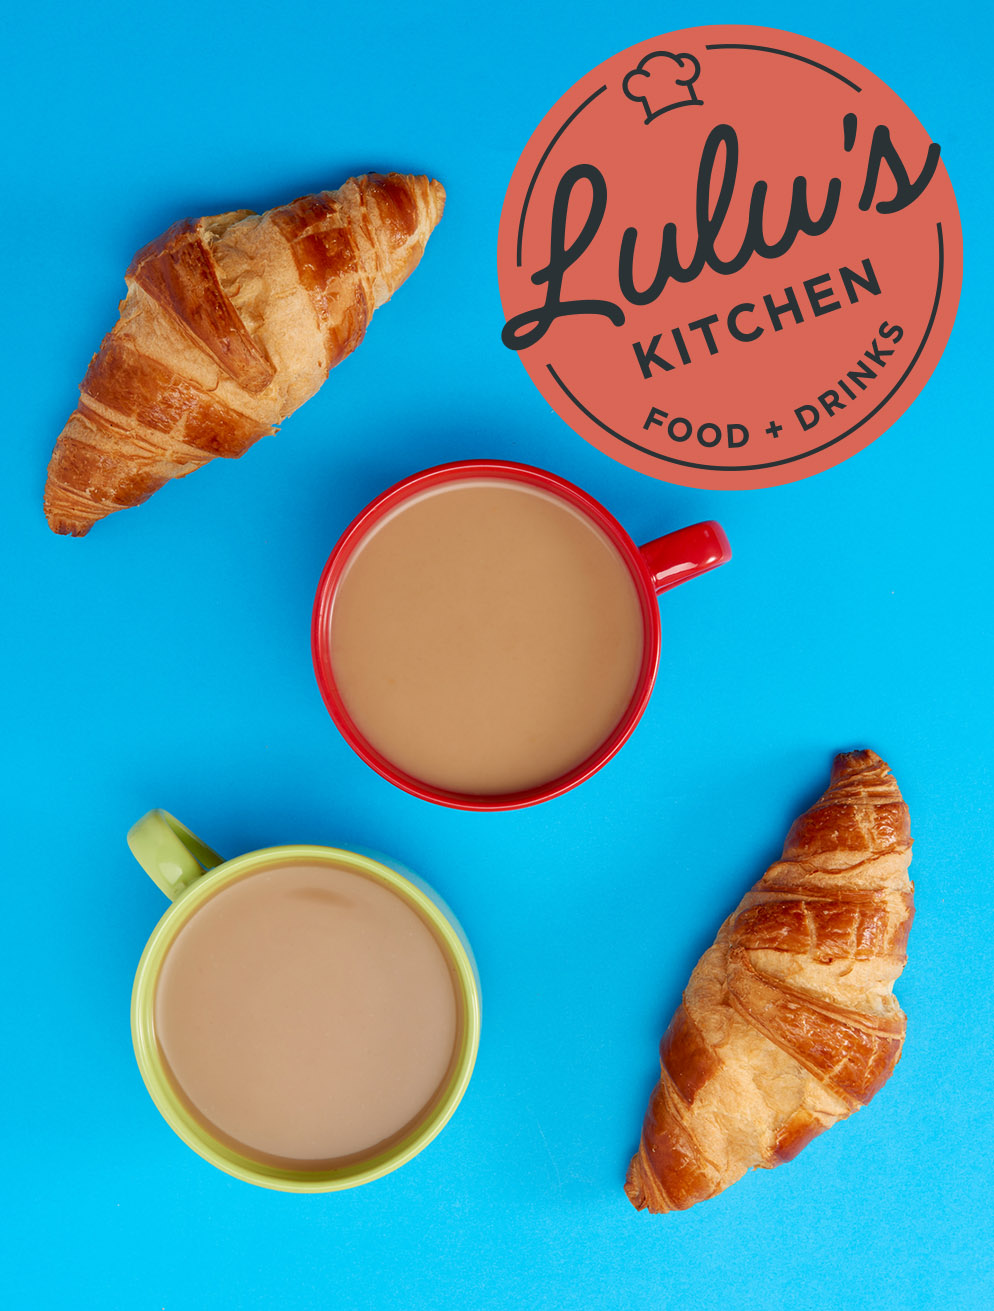 Enjoy gourmet coffee and fresh pastries served at Lulu's Kitchen